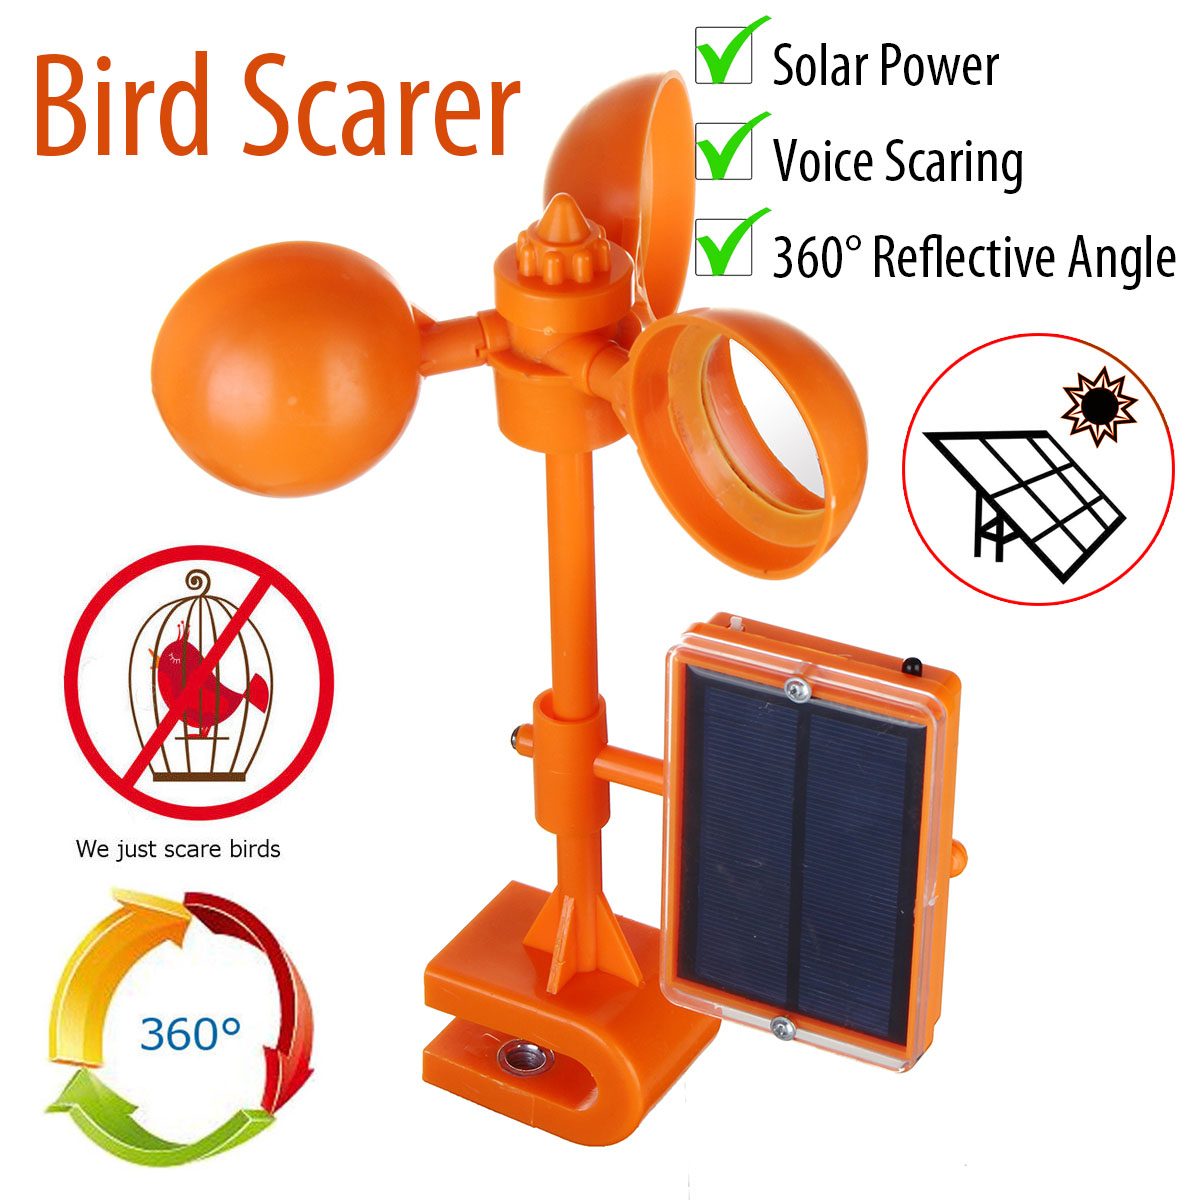 Solar Power Birds Repeller Voice Scarer 360 Degree Rotary Repellents Crows Deterrent Orchard Patio Garden Pest Control Supplies